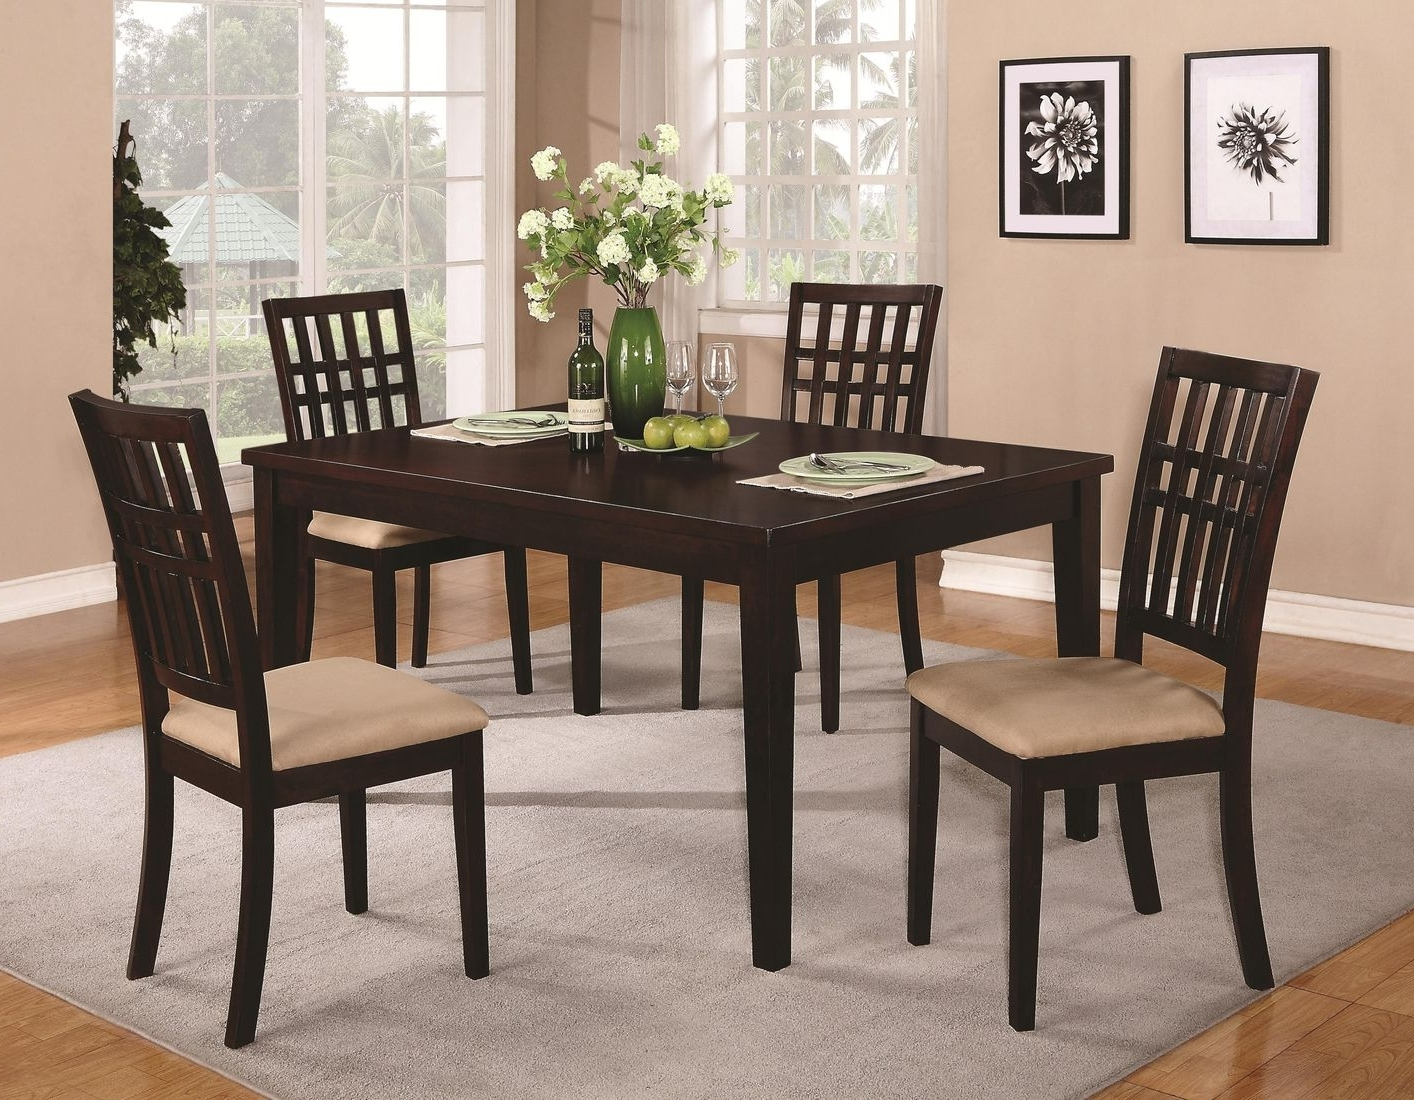 Most Up To Date Sofa Chairs With Dining Table Regarding Brandt Dark Cherry Wood Dining Table – Steal A Sofa Furniture (View 5 of 15)